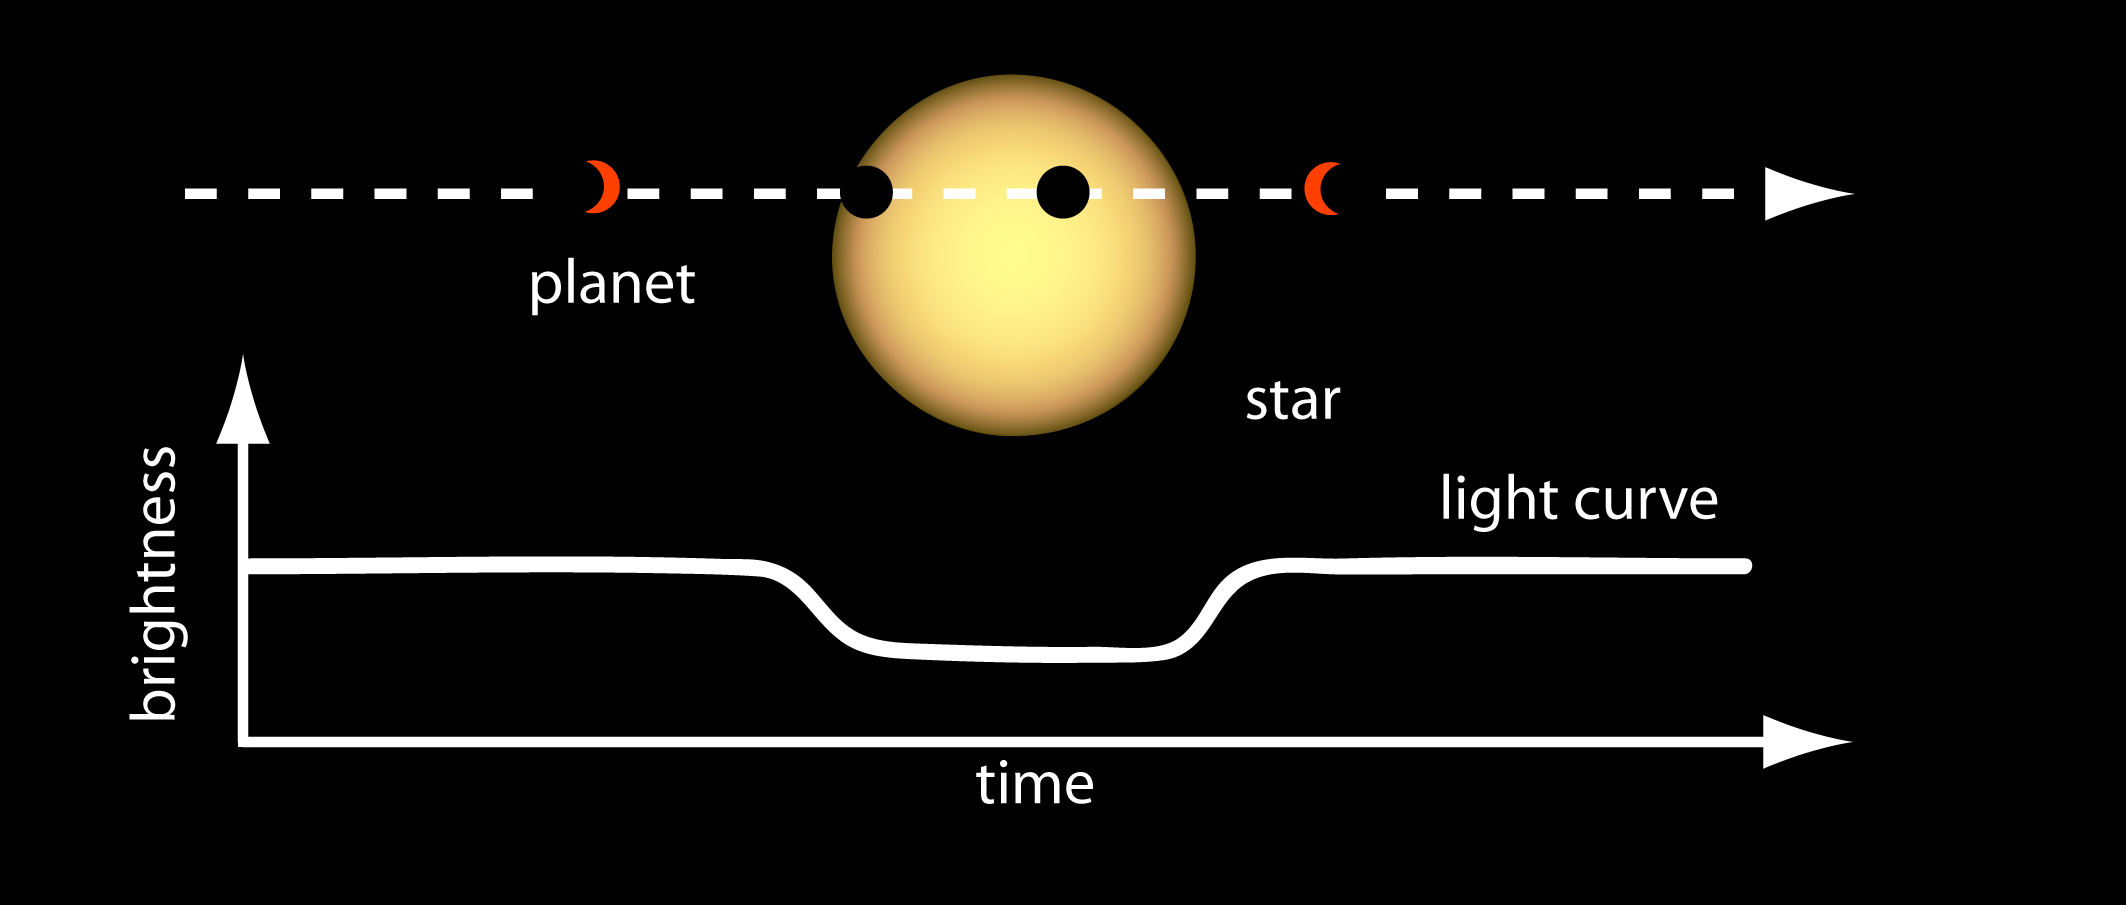 Light Curve